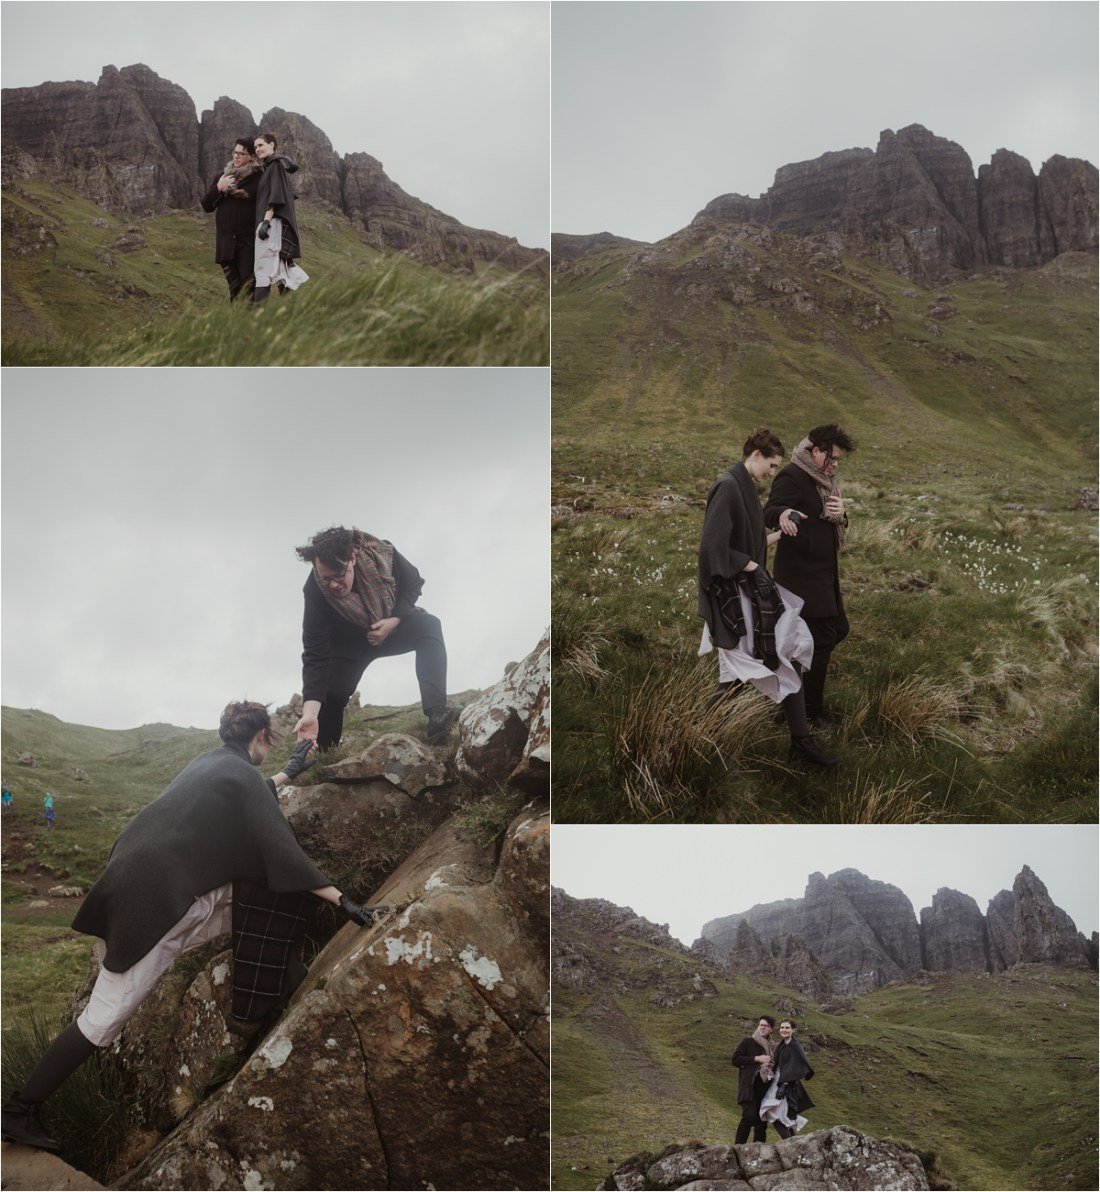 A Quiraing Elopement On The Isle of Skye photographed by Maureen du Preez